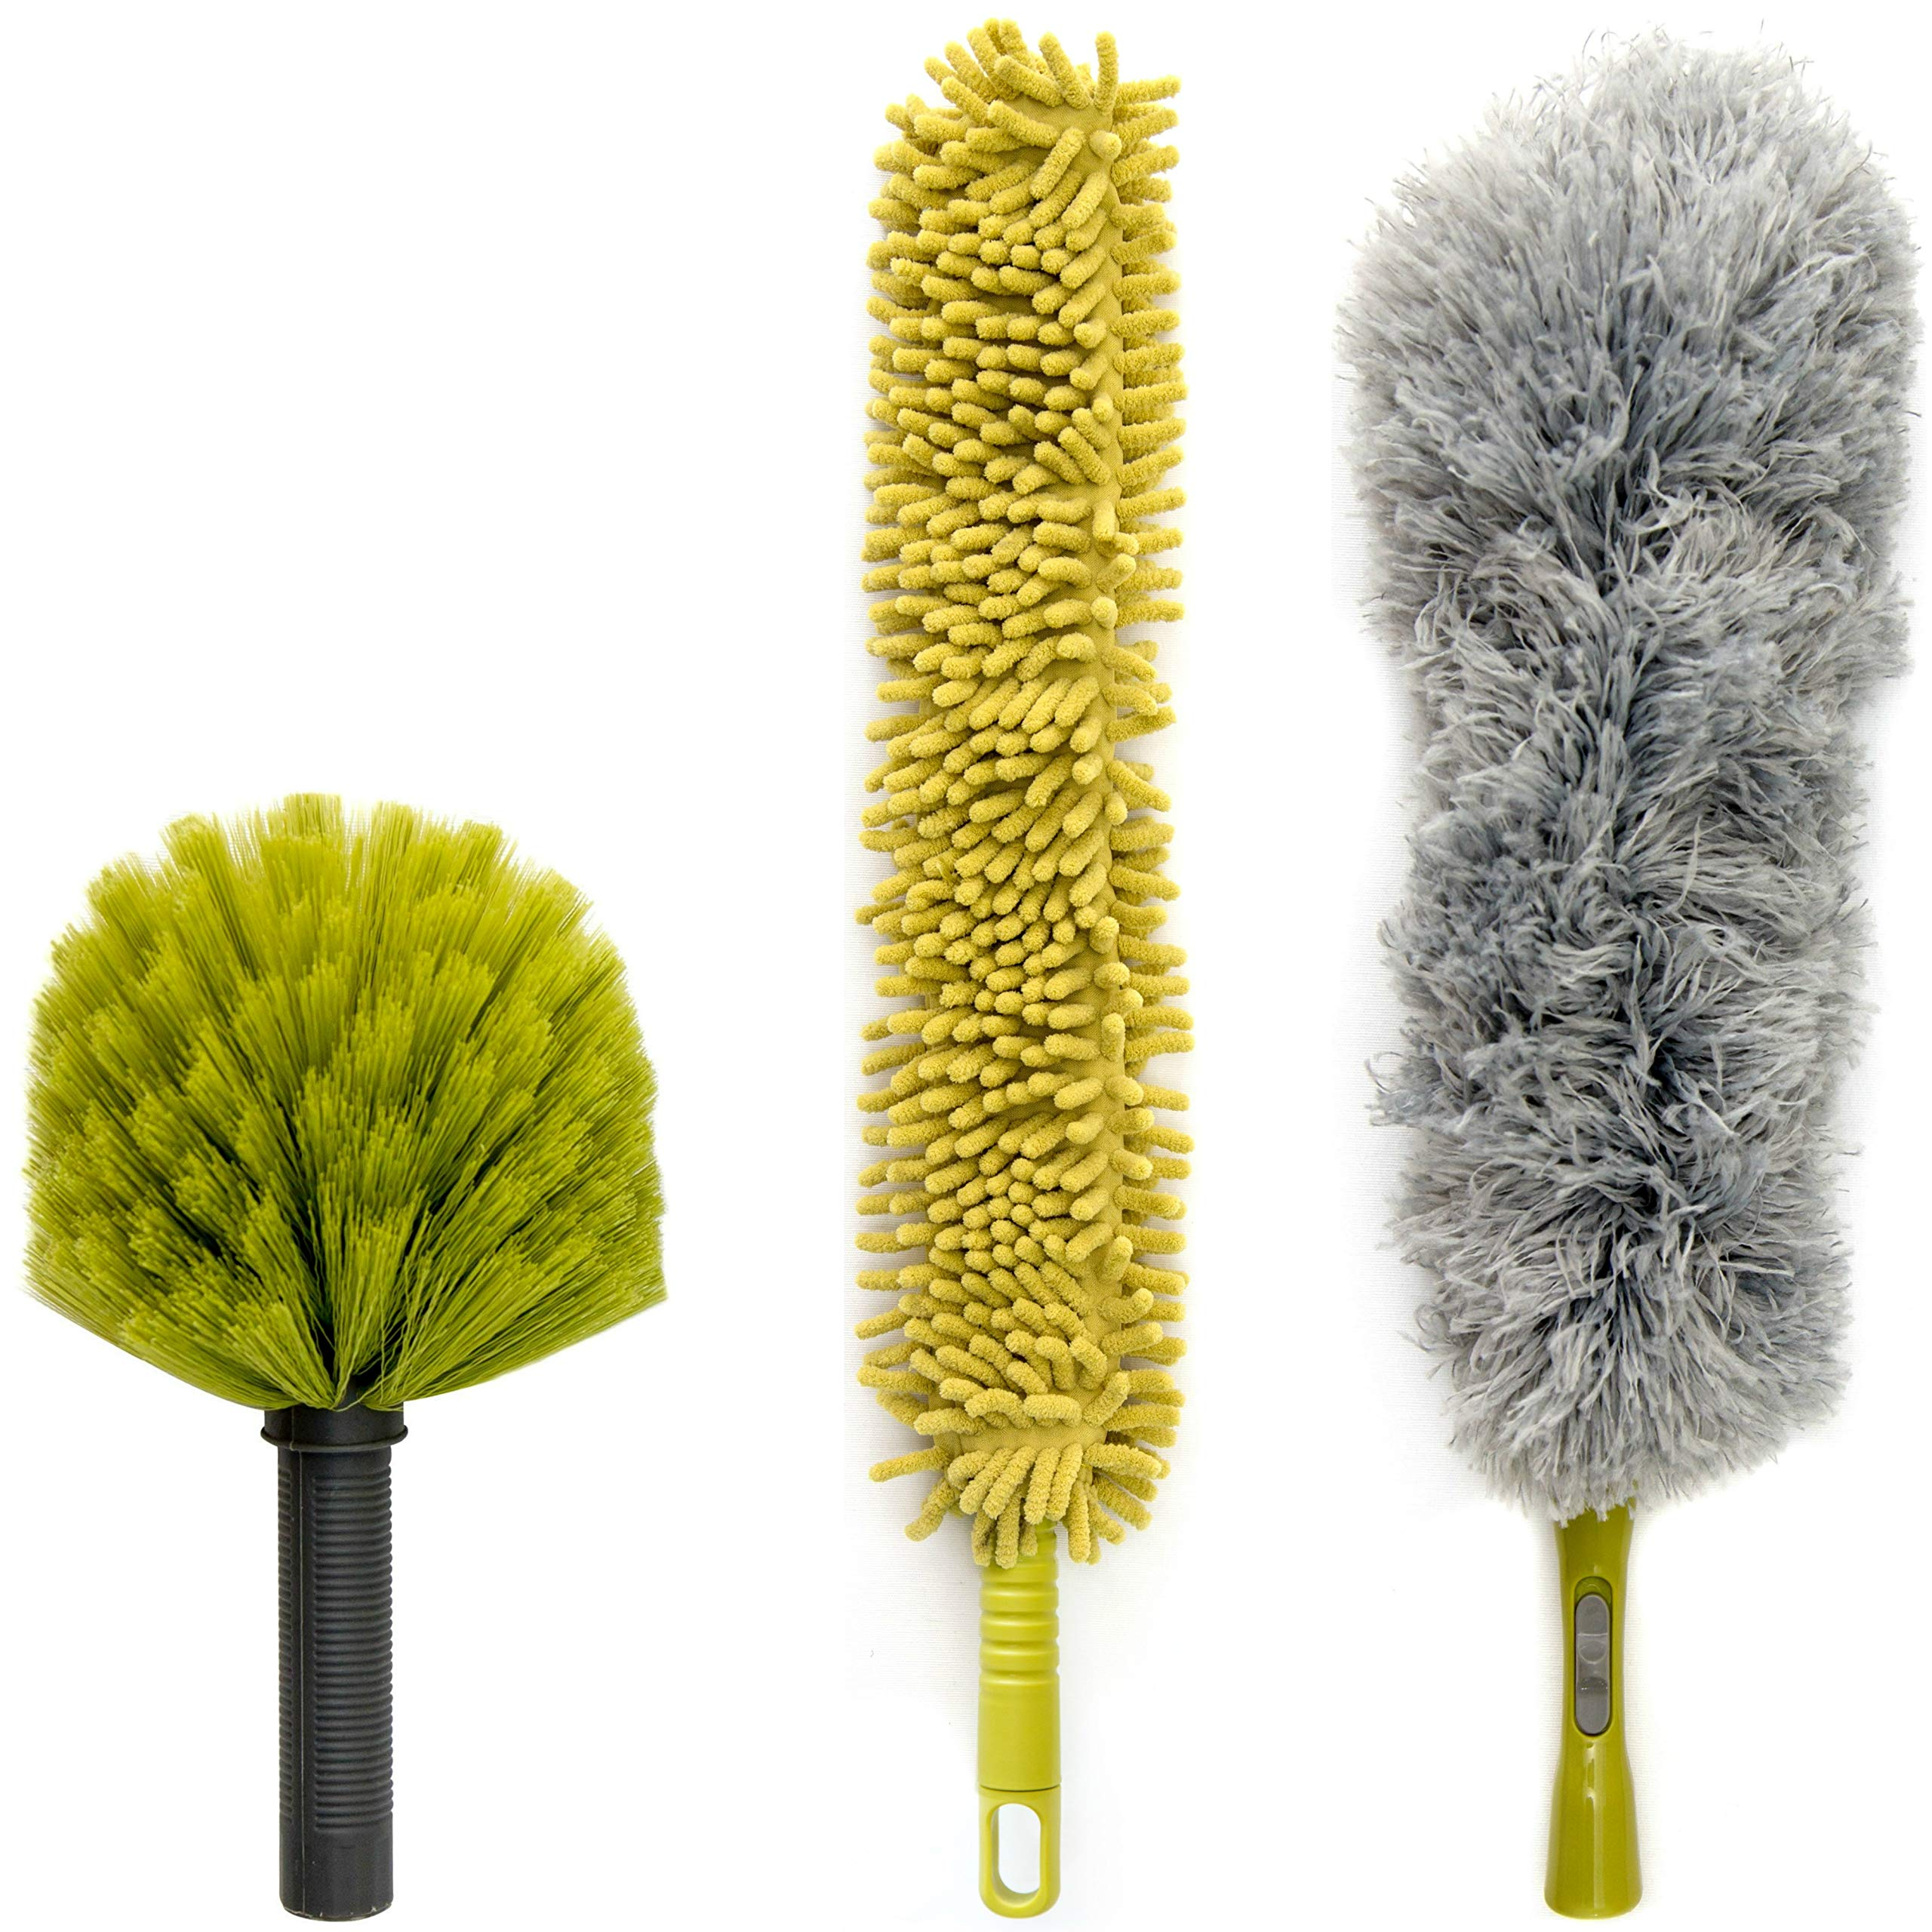 DocaPole Dusting Kit for Extension Pole or by Hand | Cleaning Kit Includes 3 Dusting Attachments | Cobweb Duster | Microfiber Feather Duster | Flexible Chenille Ceiling Fan Duster by DOCAZOO